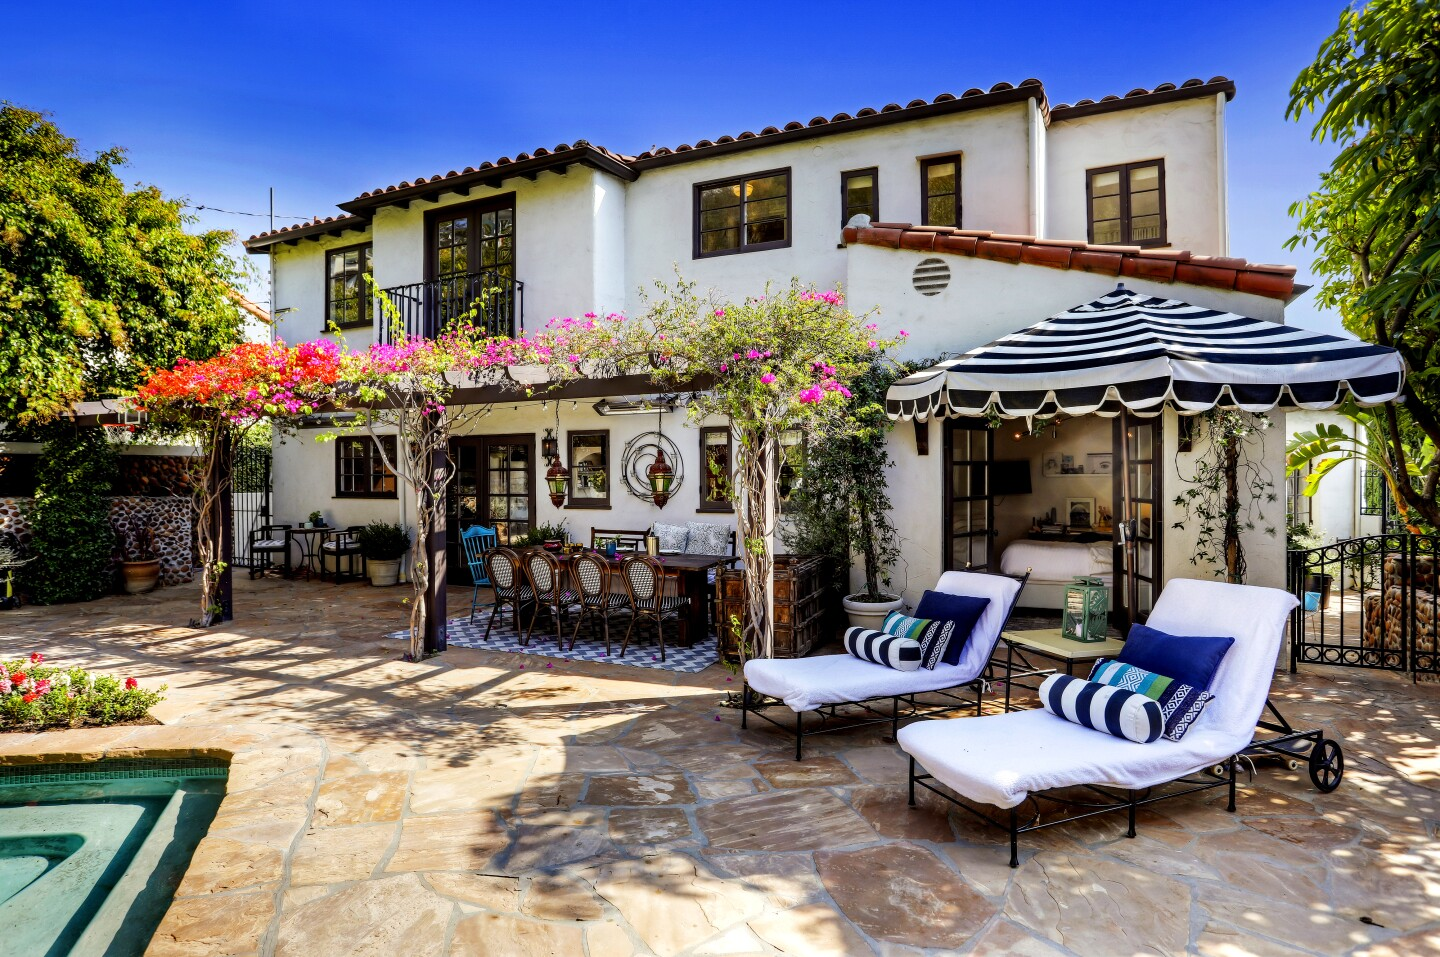 """""""Schitt's Creek"""" actor Dan Levy has bought a Spanish-style home in Los Feliz for $4.13 million. Set high up from the street, the house features 3,177 square feet of updated interior, original stonework and a chef's kitchen. Stonework and a hand-forged staircase in the entry are original. French doors open onto a dining patio in the backyard."""